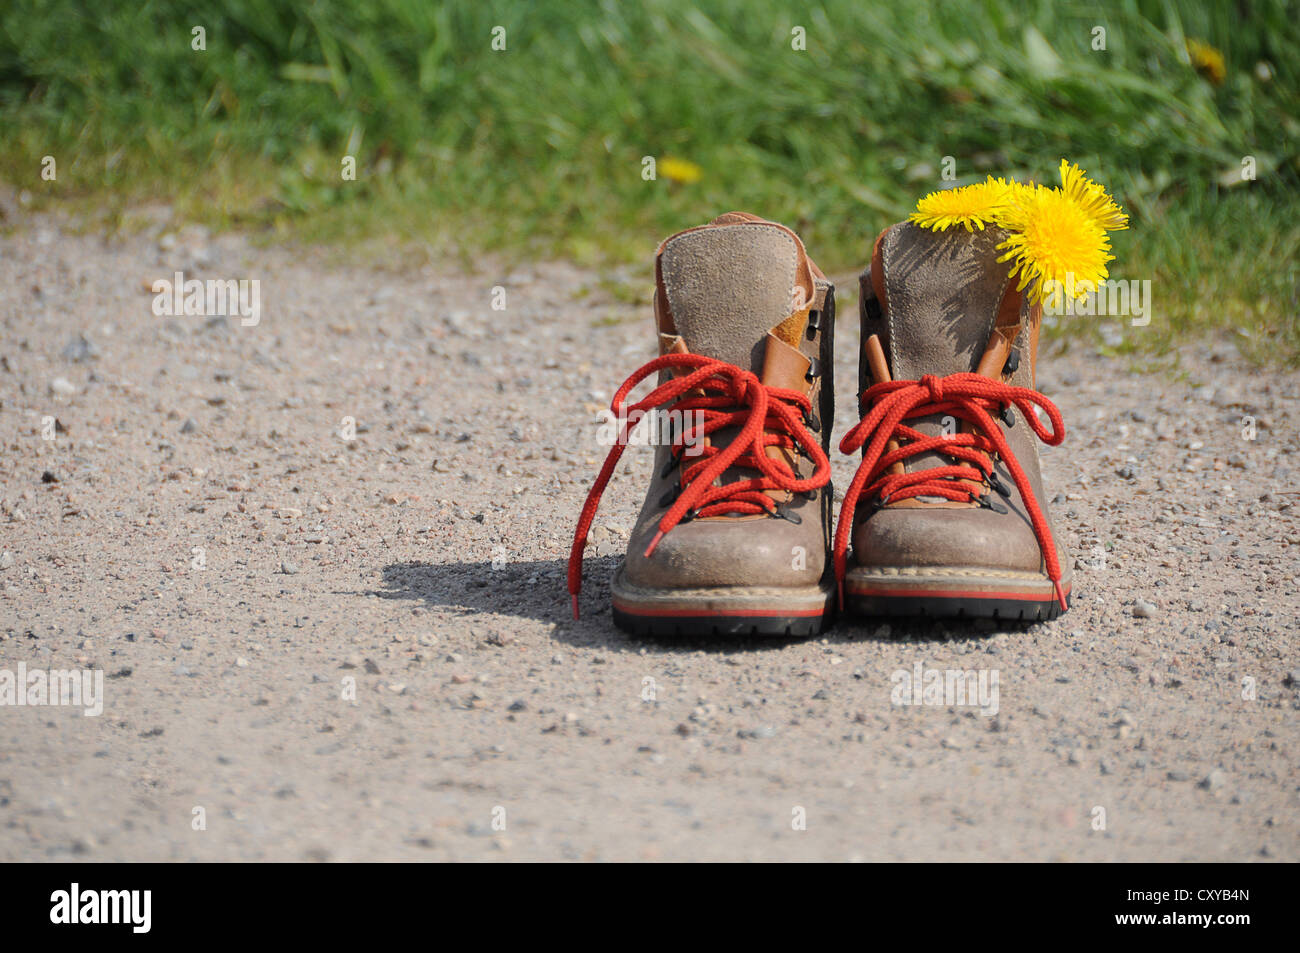 Hiking boots with dandelion flowers on a path - Stock Image